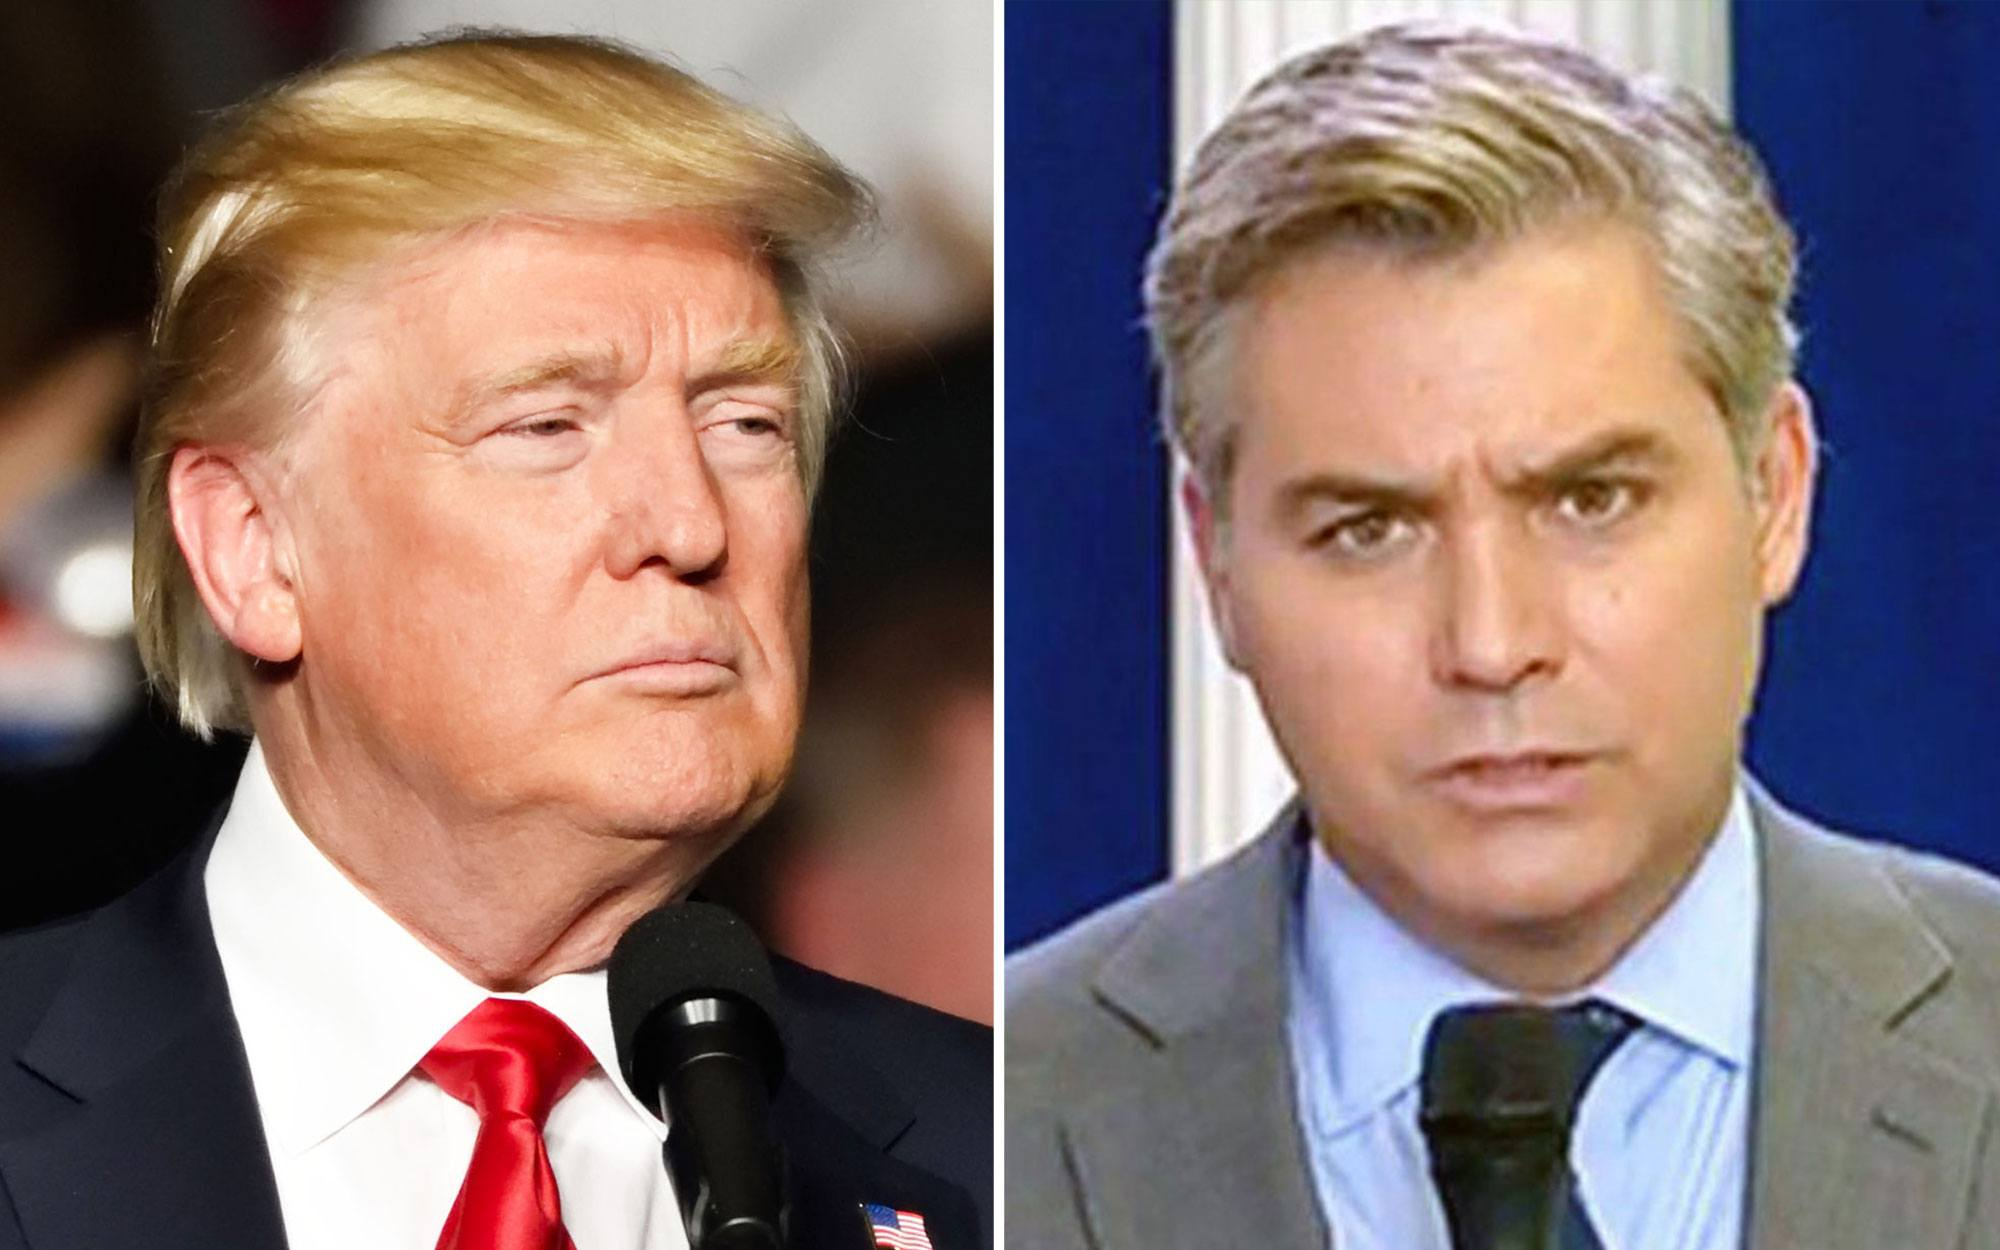 Jim Acosta Whines About Not Getting Question From President Trump, Sarah Sanders Flattens Him